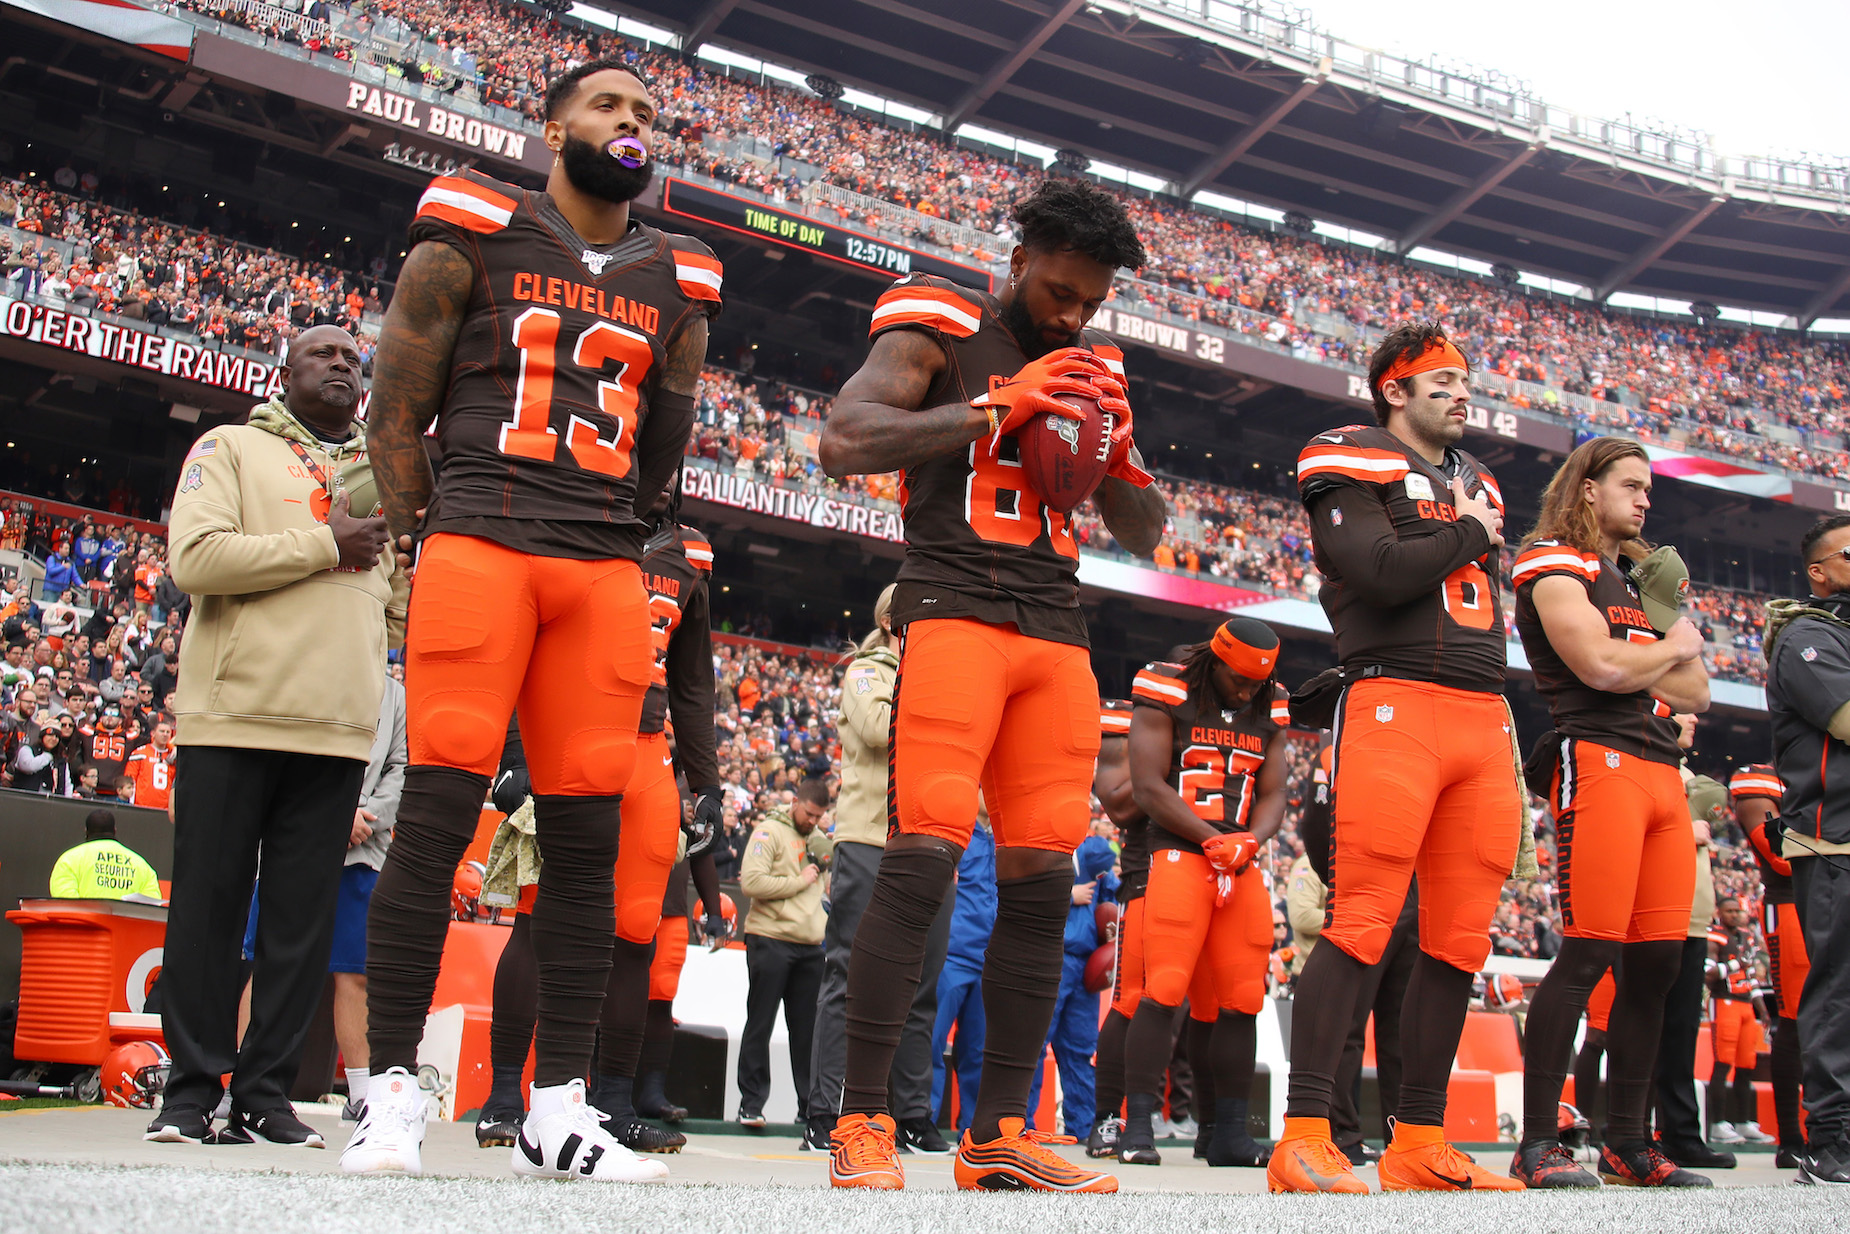 Jarvis Landry, Odell Beckham, Jr., and Baker Mayfield are all expected to play for the Cleveland Browns on Sunday.